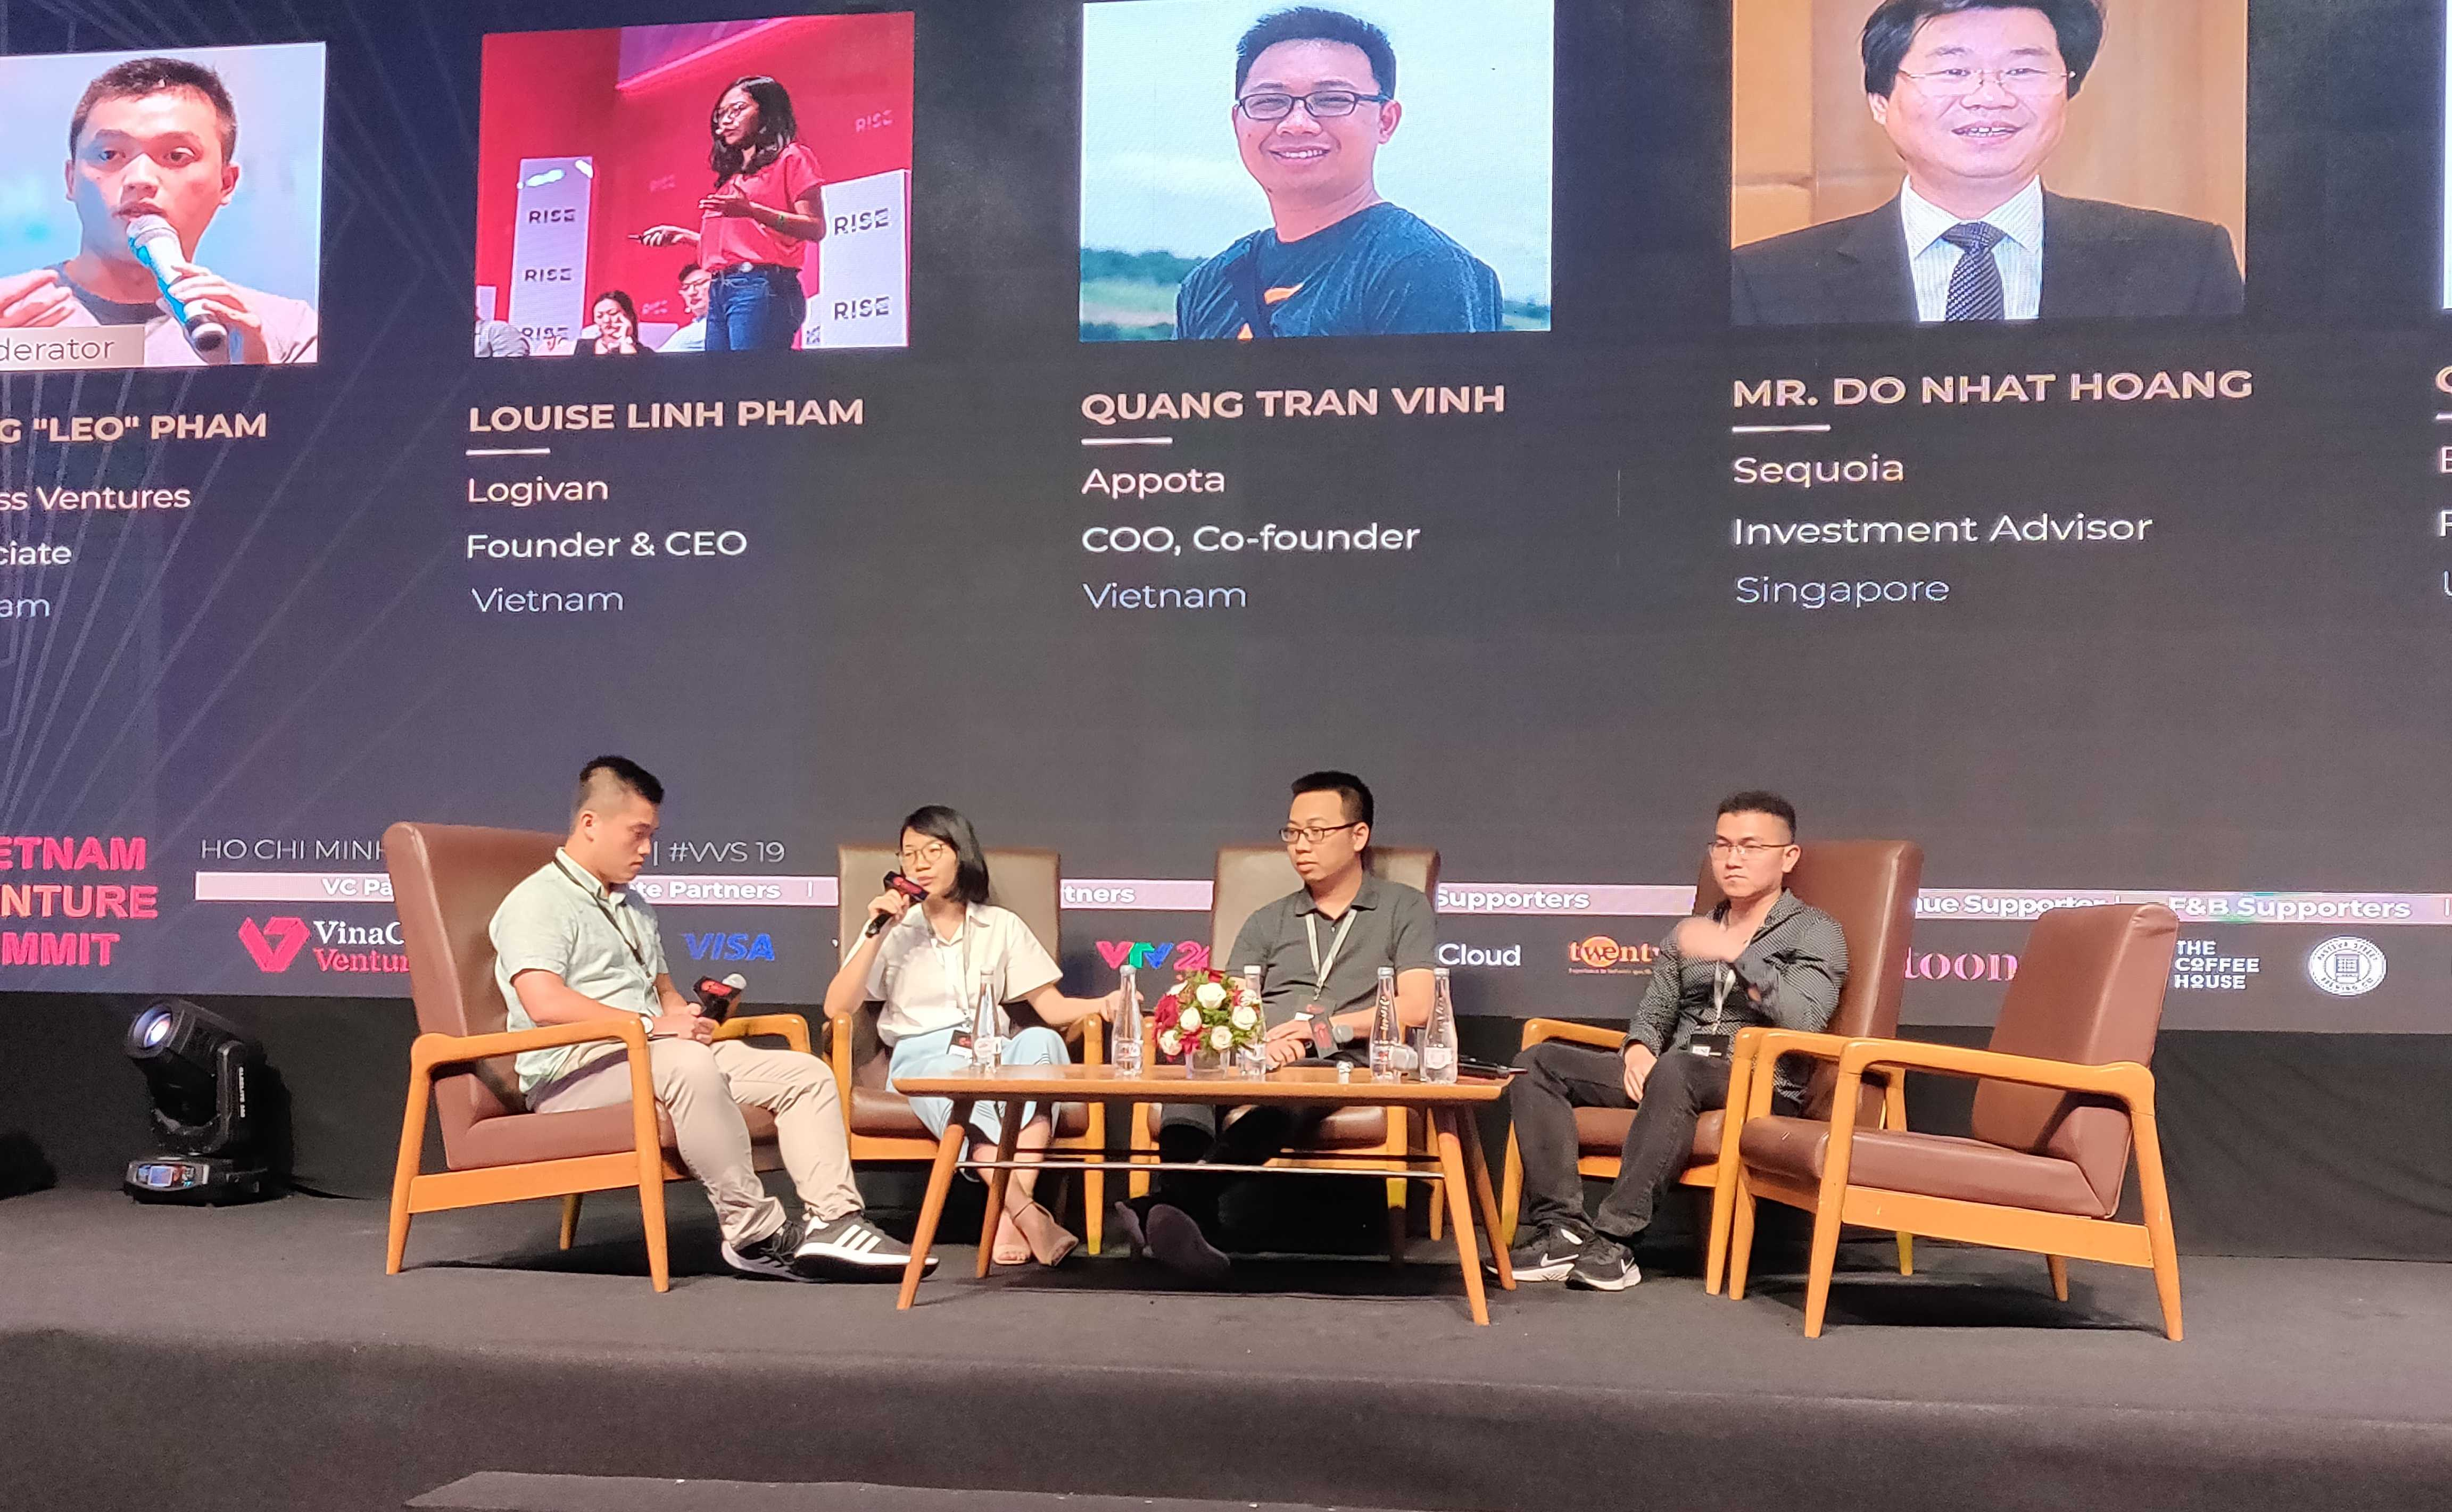 ceo-logivan-linh-pham-discuss-on-panel-vietnam-ventures-summit-2019